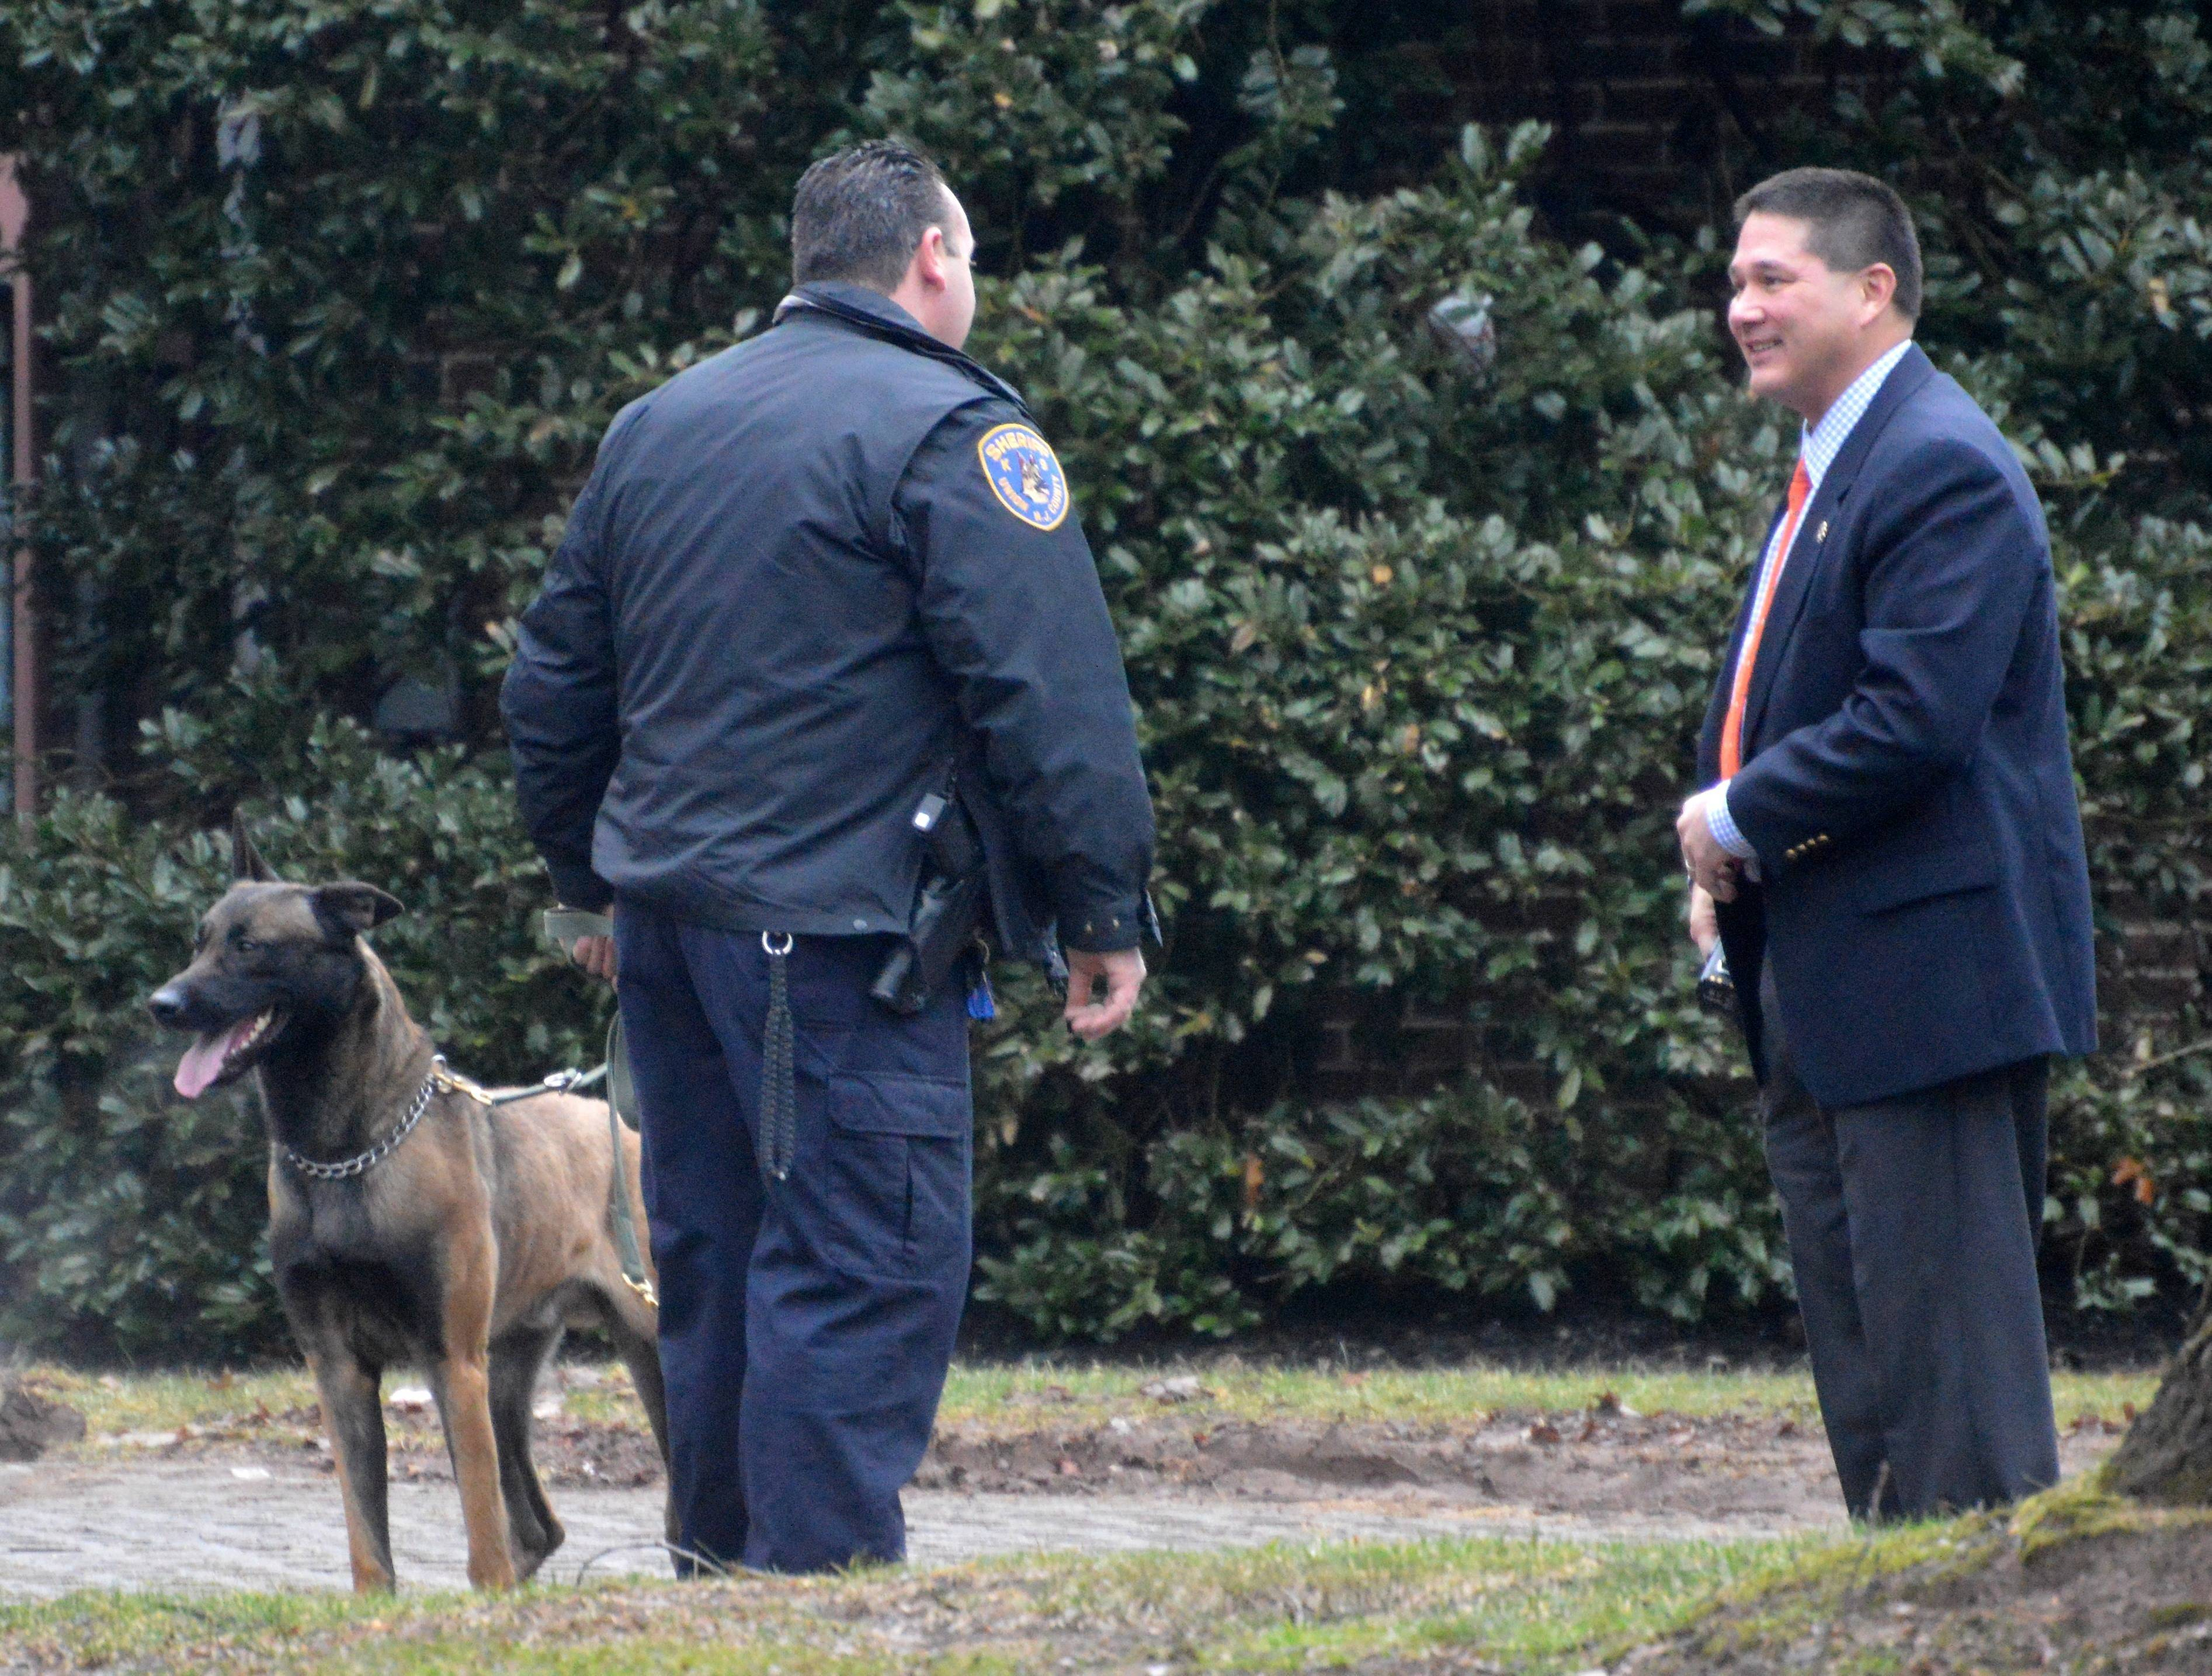 92abd82f959038cea28f_61a9323b4c3aa3969ff7_Chief_Conley_Ted_Conley_speaks_with_Anthony_Gialanella_of_Union_Co._K-9_Squad._No_bomb_found..JPG